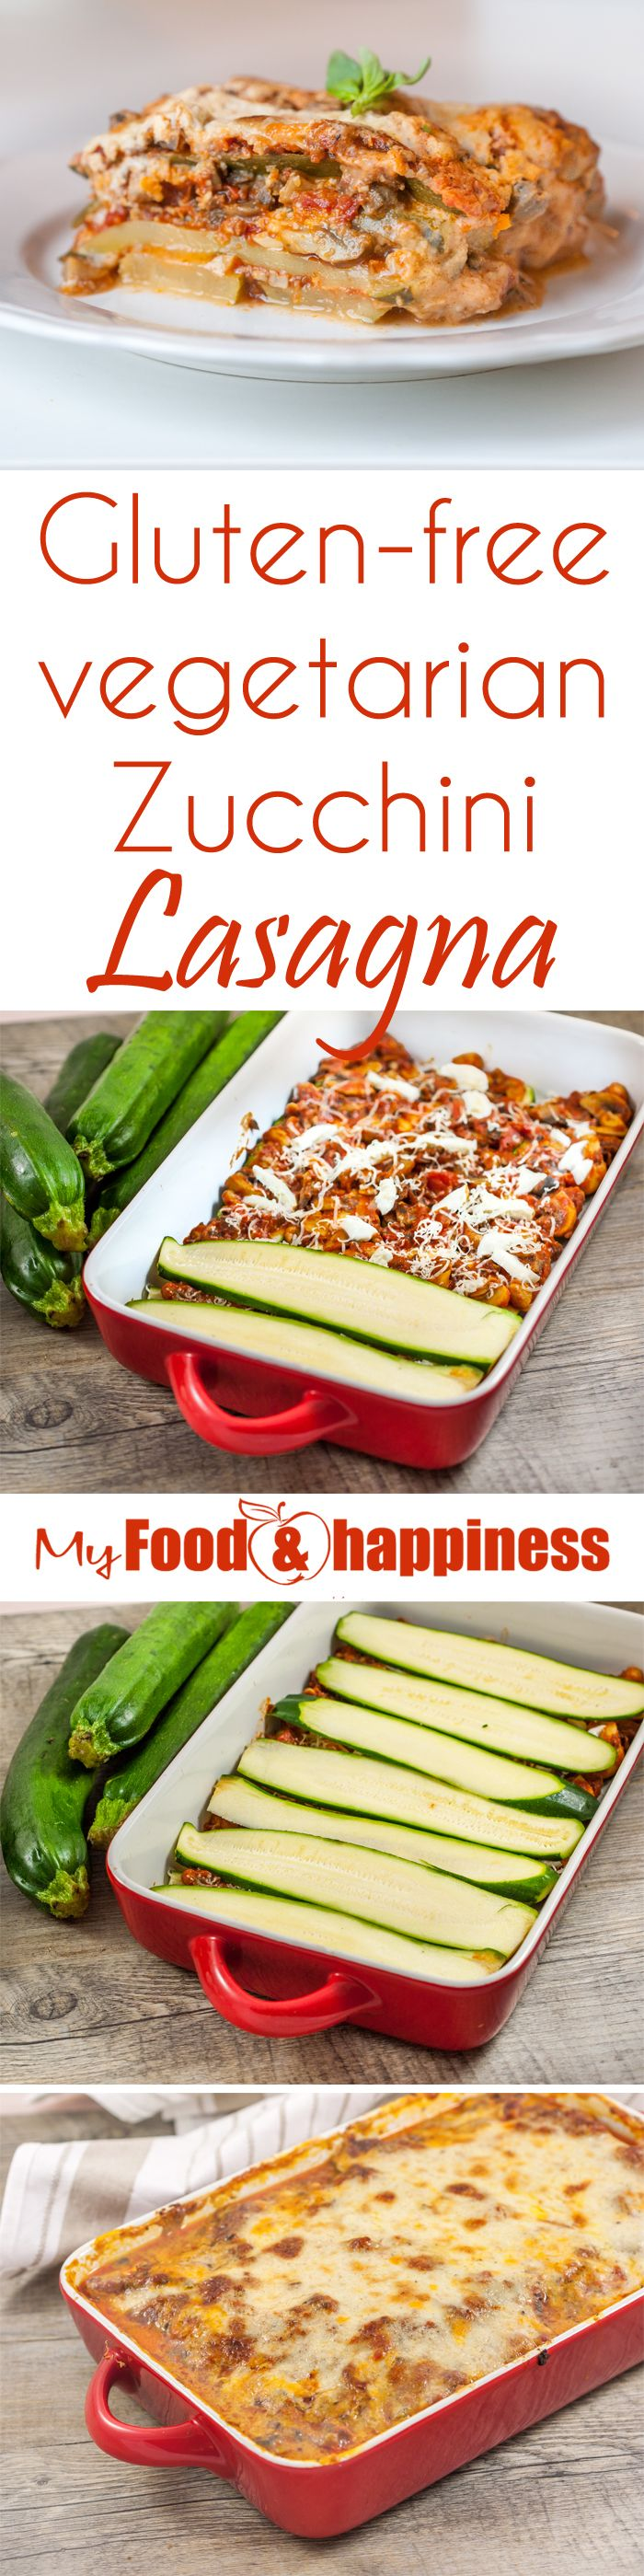 Healthy gluten & wheat-free zucchini lasagna made with zucchini slices instead of lasagna sheets. I am also using a super delicious vegetarian tomato pasta sauce with olives and mushrooms, An amazing lighter alternative if you are trying to eat less wheat products or you just want to include more veggies in your diet. Just like the classic lasagna recipe, this zucchini lasagna is topped with Béchamel sauce instead of just cheese to make it more creamy and flavorful.